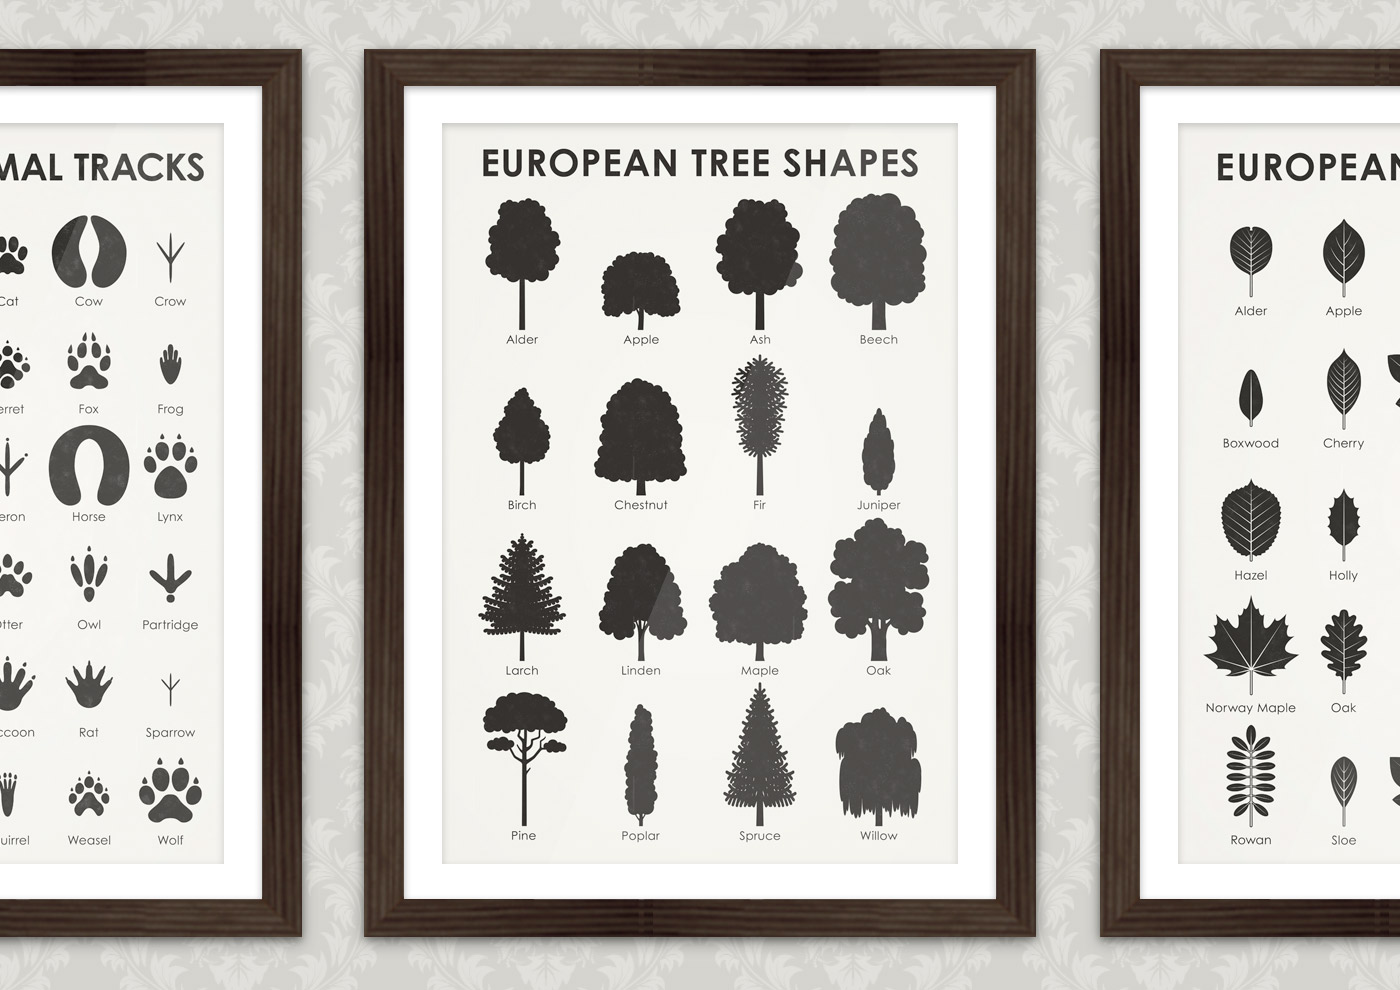 A practical infographic wal chart sheet that helps you to easily identify, learn and remember the typical shapes of 16 common European tree species, such as alder, apple, ash, beech, birch, chestnut, fir, juniper, larch, linde, maple, oak, pine, poplar, spruce, sycamore and willow